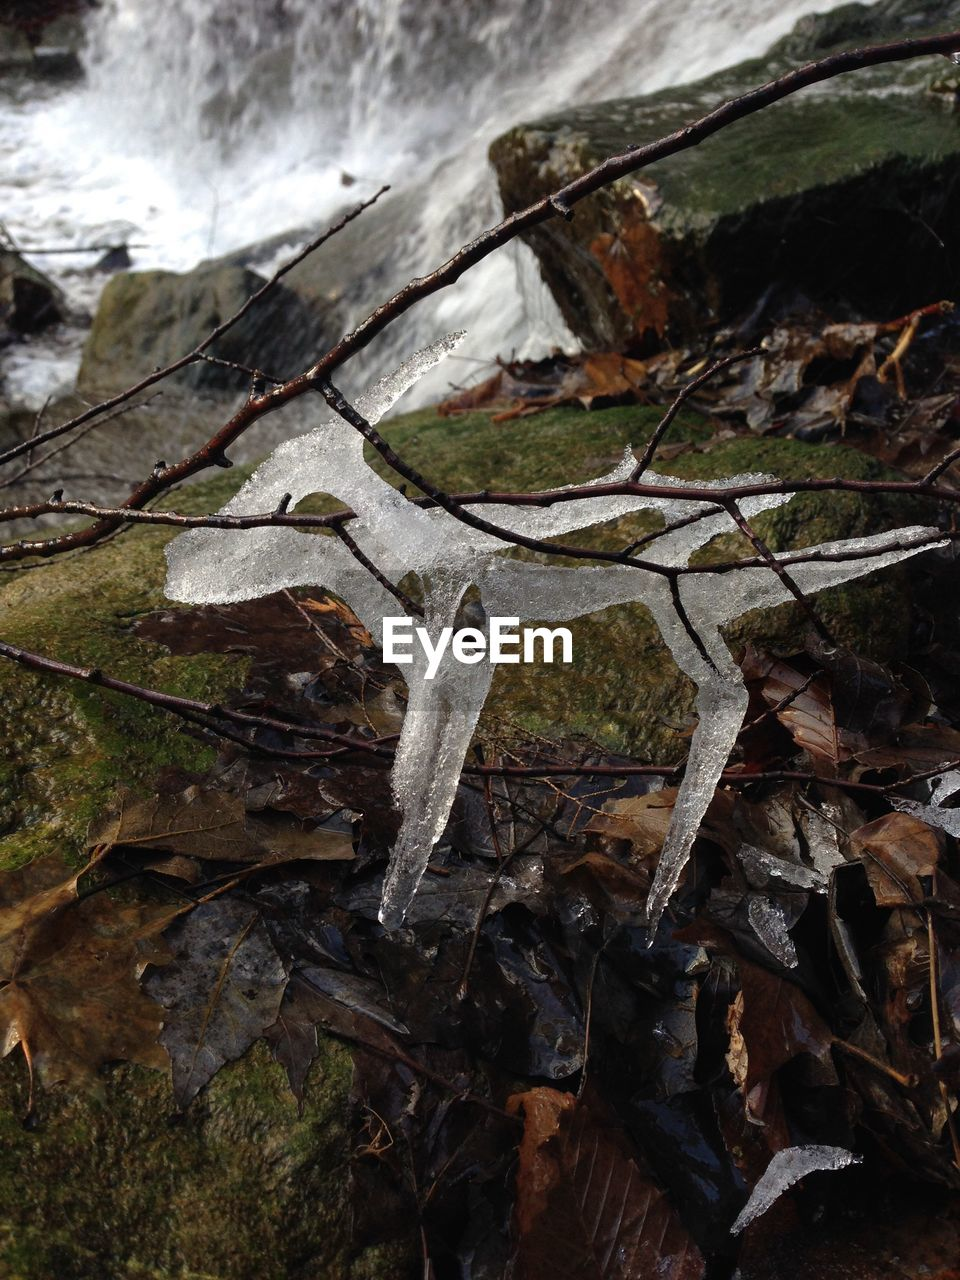 nature, no people, outdoors, water, day, cold temperature, high angle view, winter, leaf, close-up, beauty in nature, dead tree, animal themes